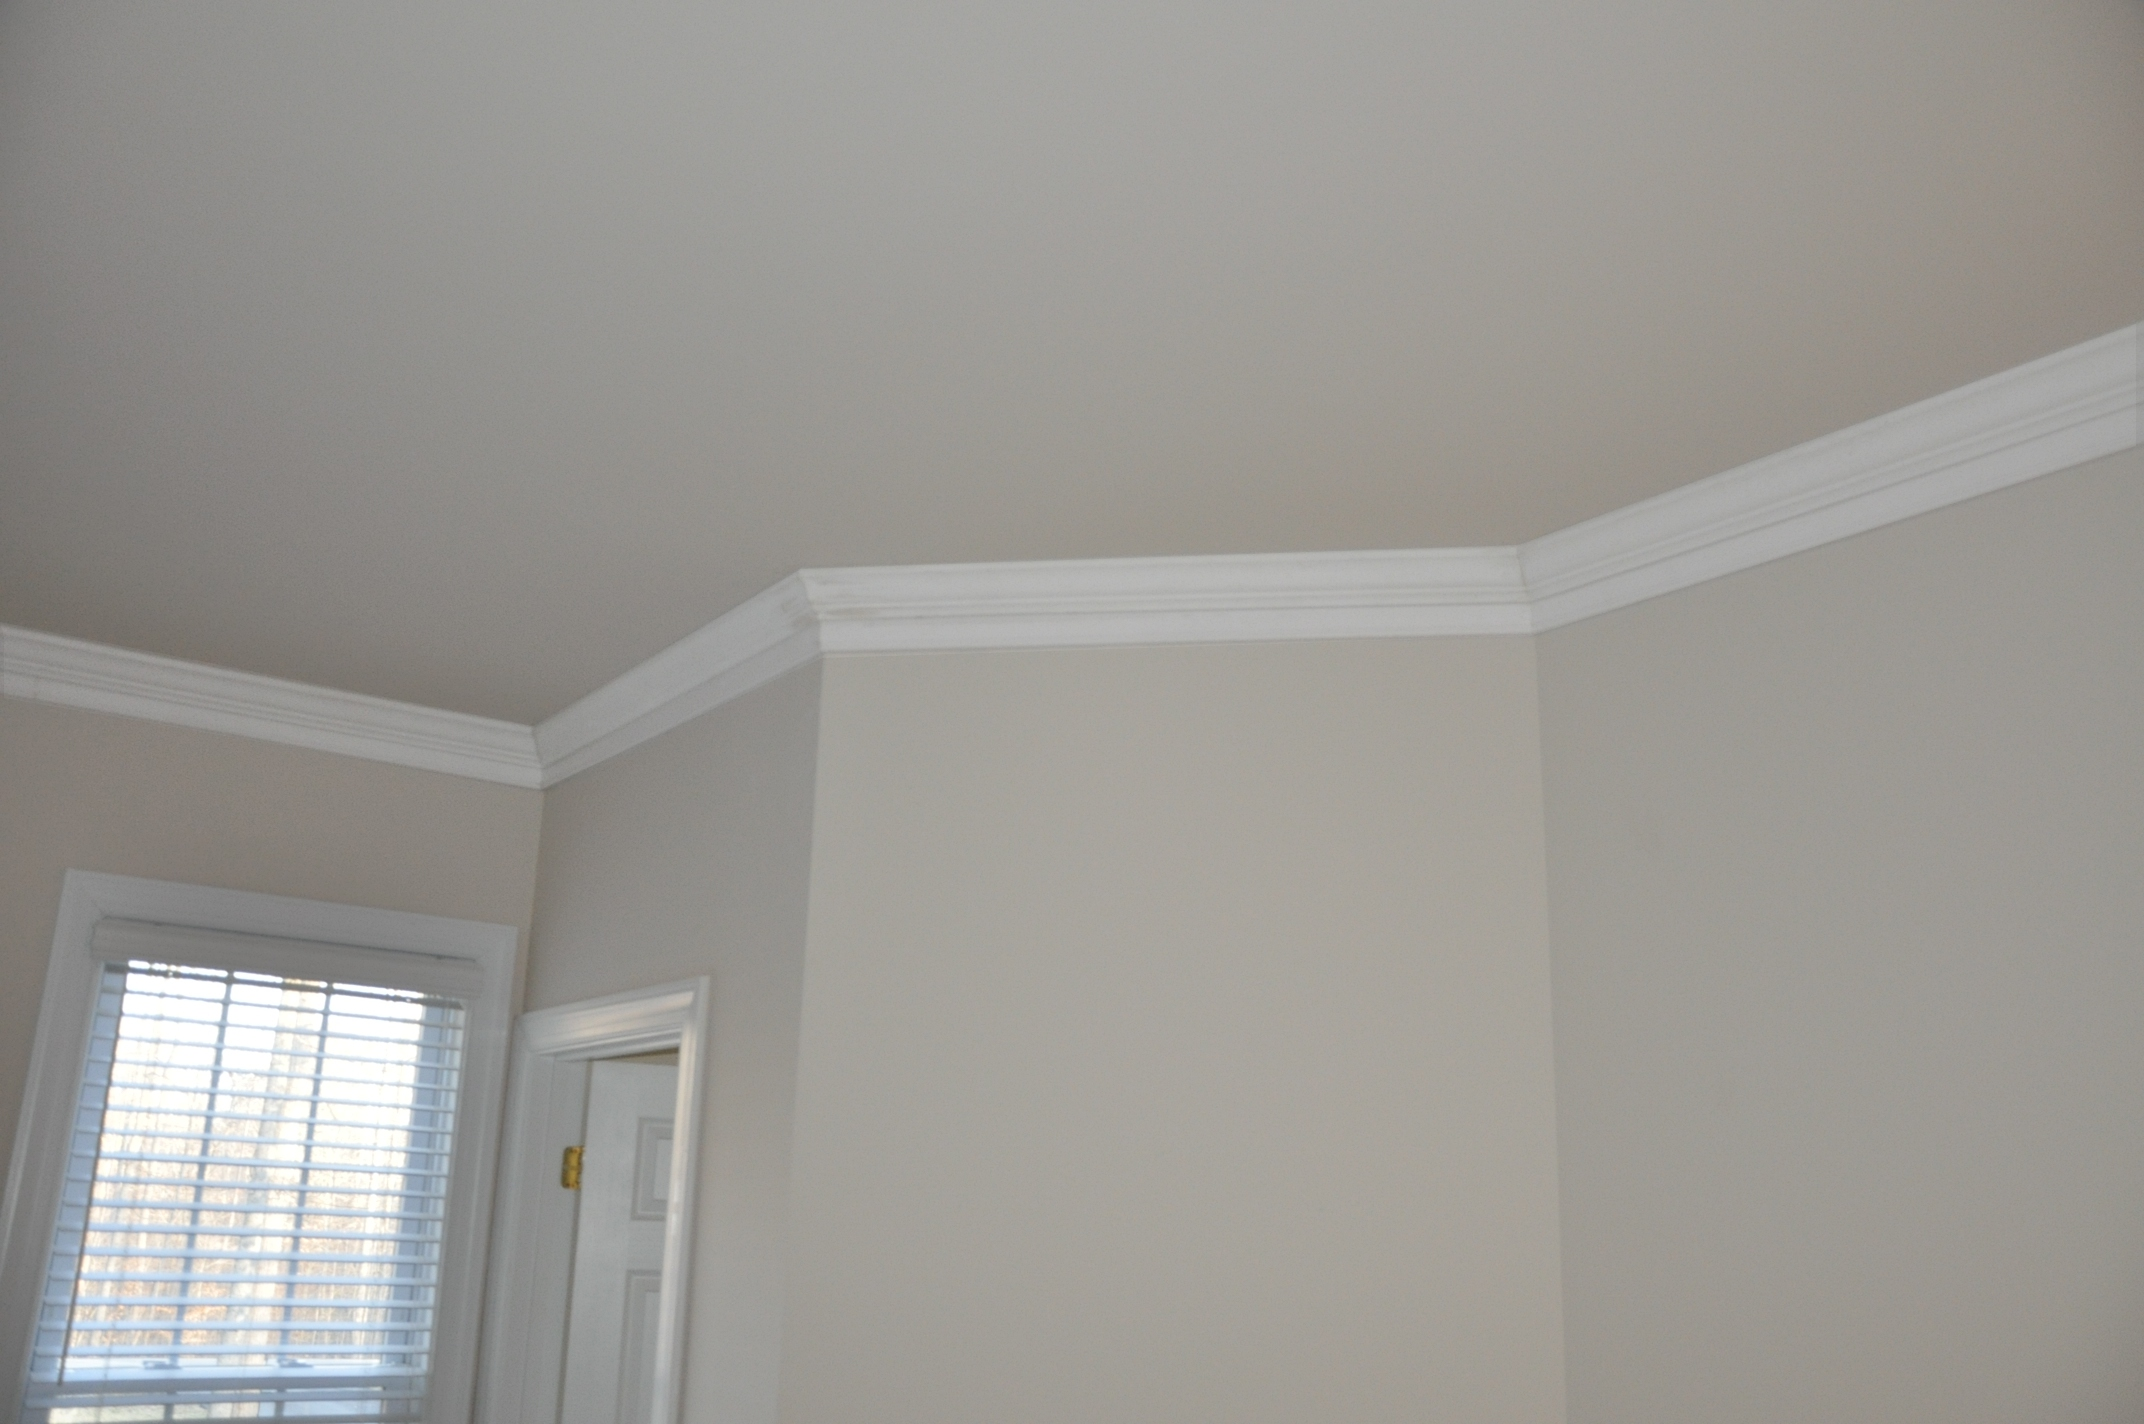 How to install crown molding decorative ceiling tiles blog - Different types of decorative ceiling tiles you can find ...